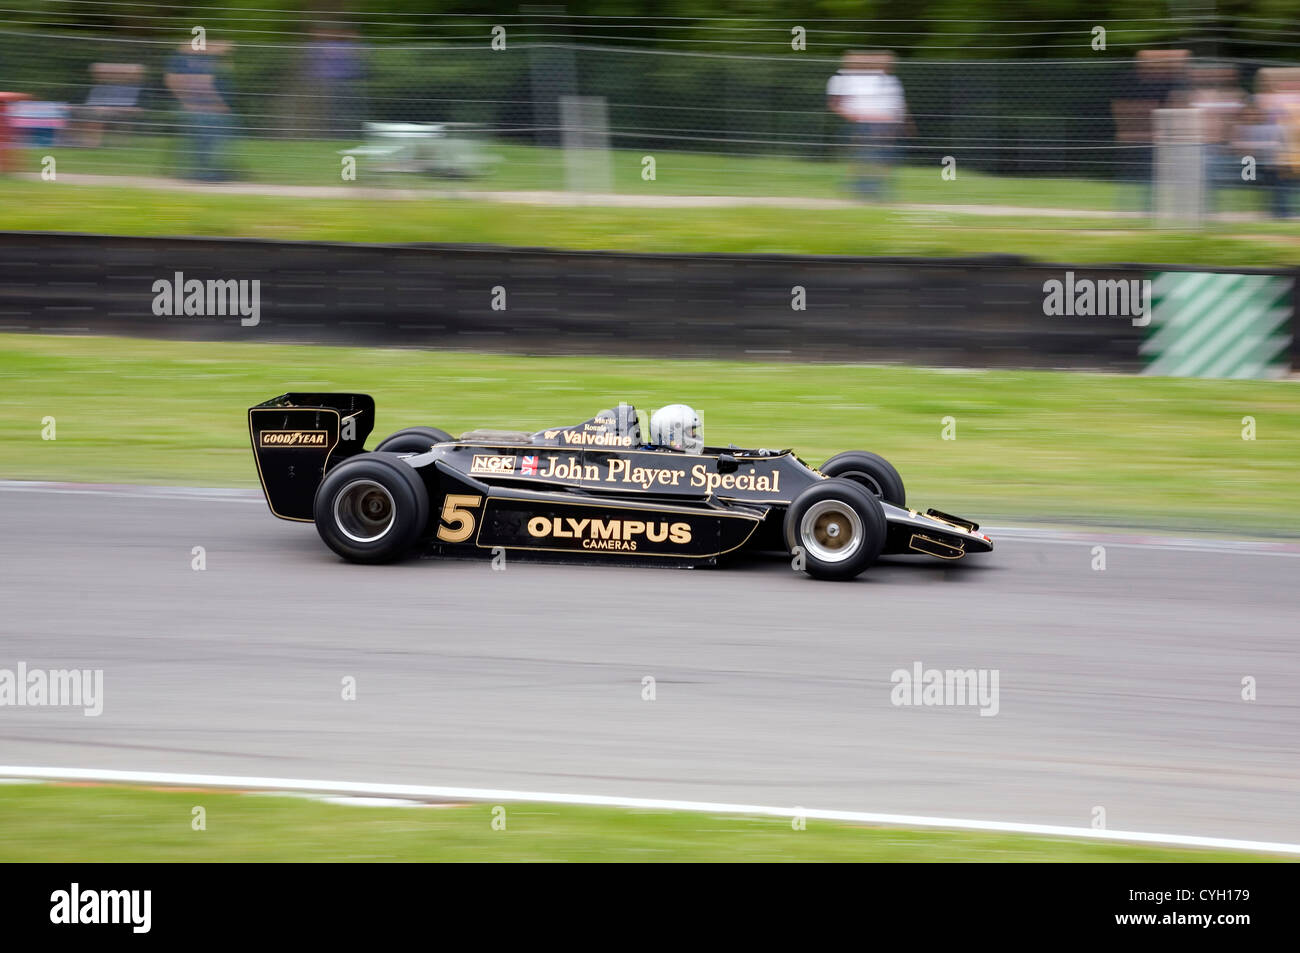 Type 79 Formula One Lotus racing car on a race track in Brands ...